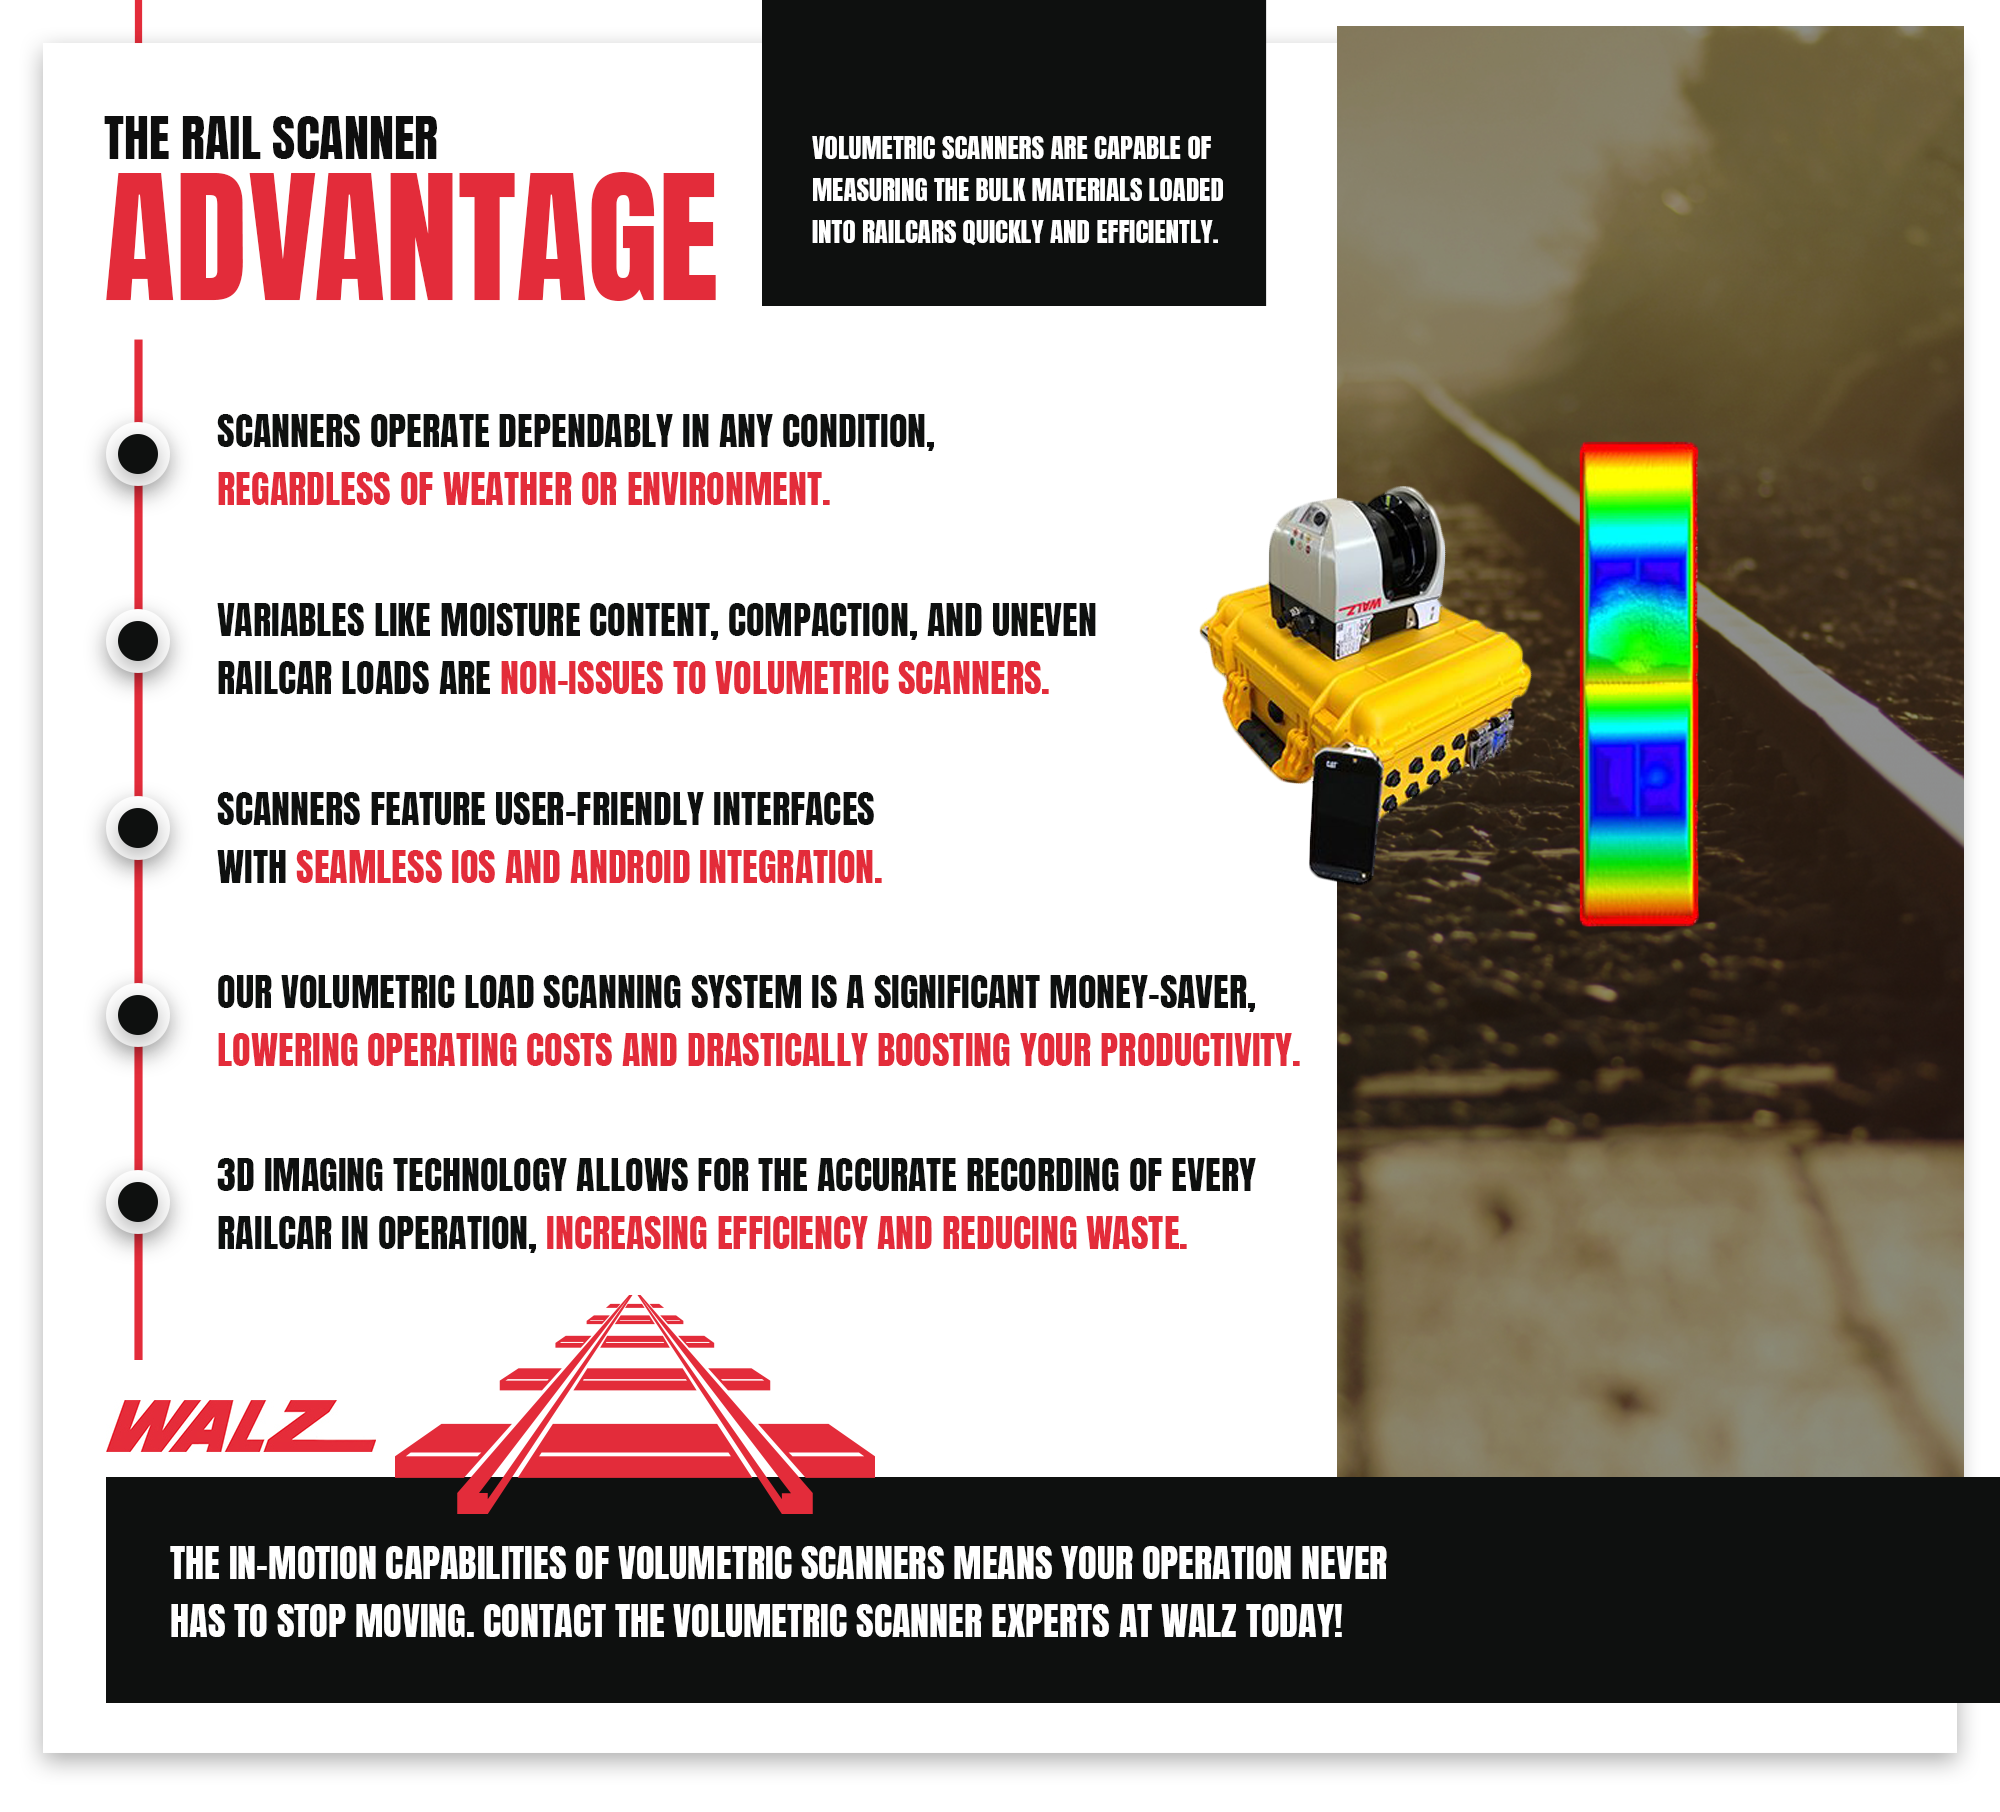 Rail-Scenner-Advantage